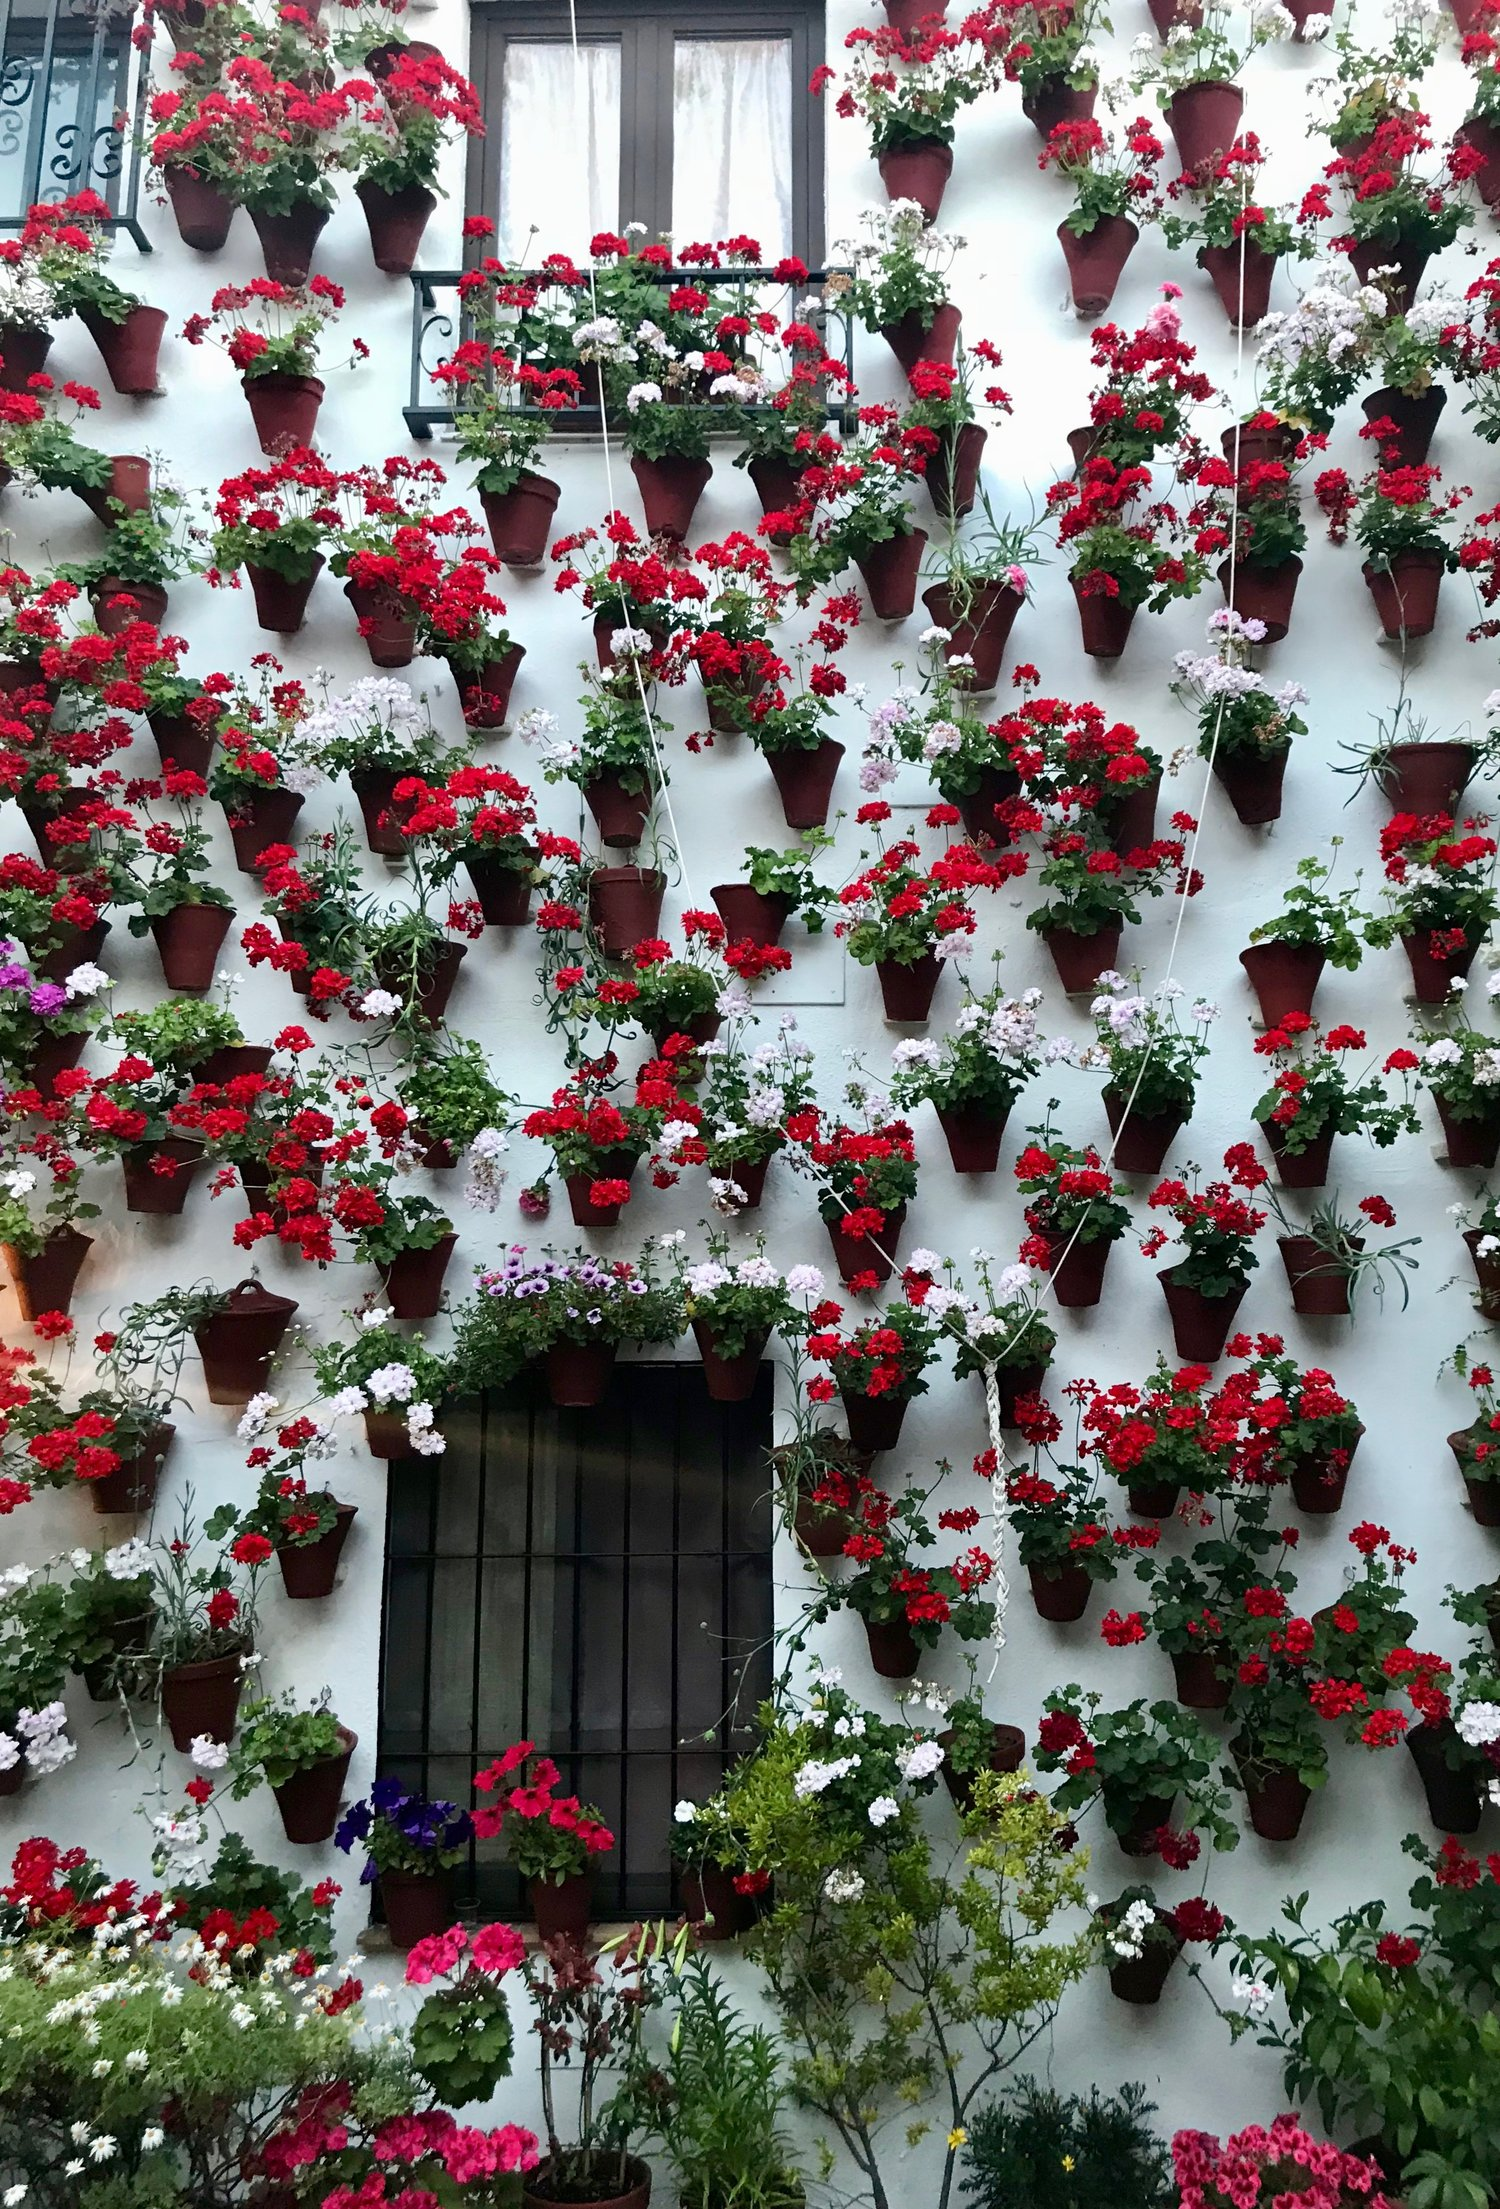 The most famous feature of Cordobés patios are the flower-covered walls, which gardeners water with a complicated system of pulleys, watering cans, and irrigation technology.